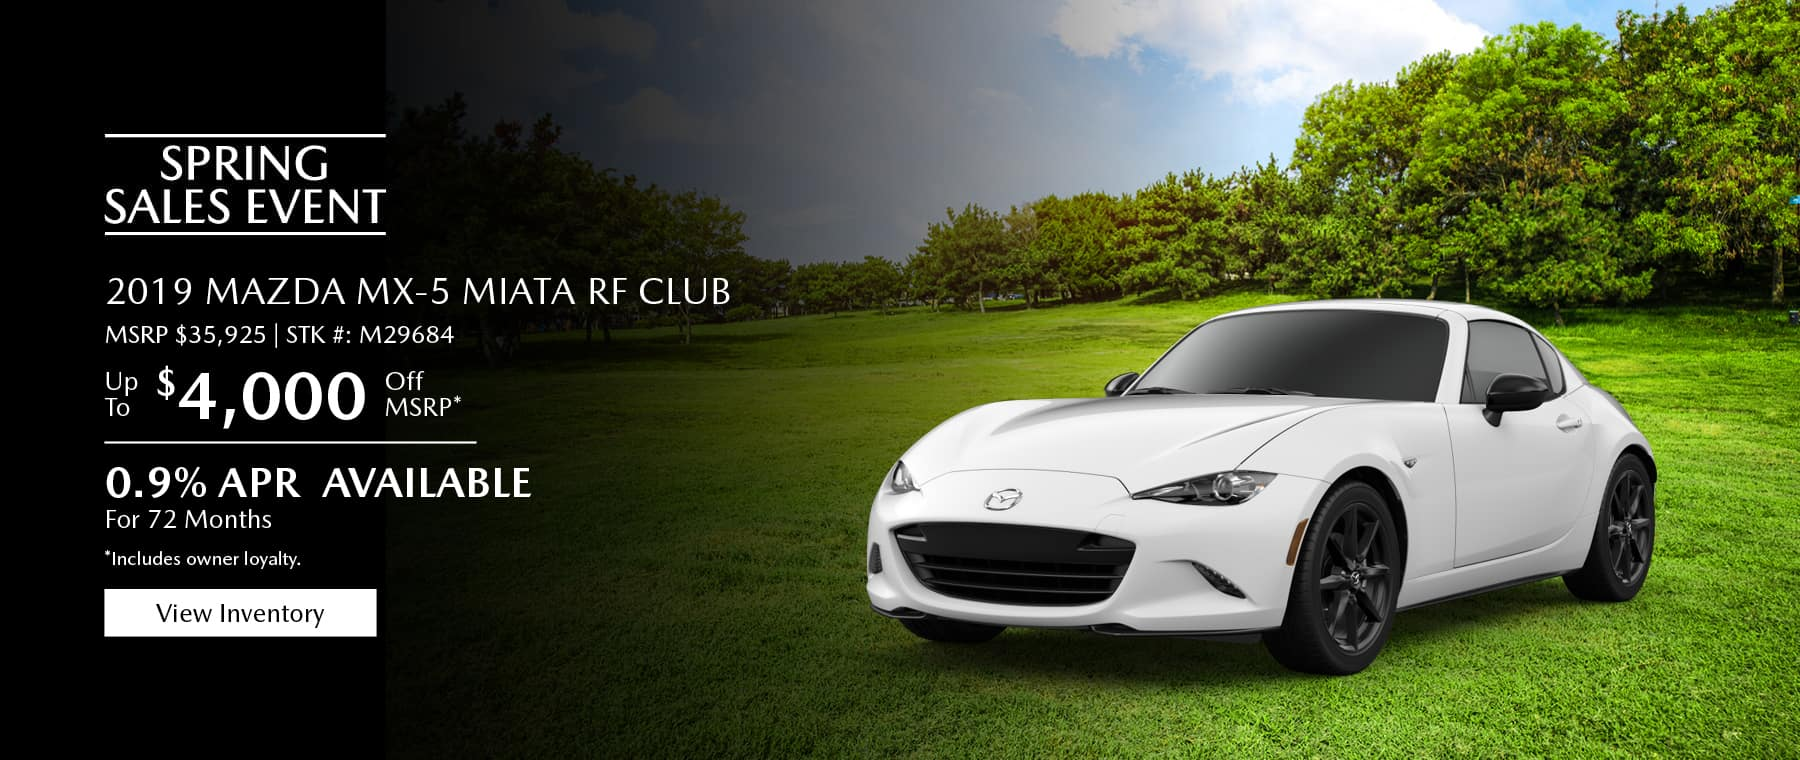 $4,000 Off MSRP on the 2019 Mazda MX-5 Miata RF Club. 0.9% APR available for 72 months. Includes owner loyalty. View inventory.